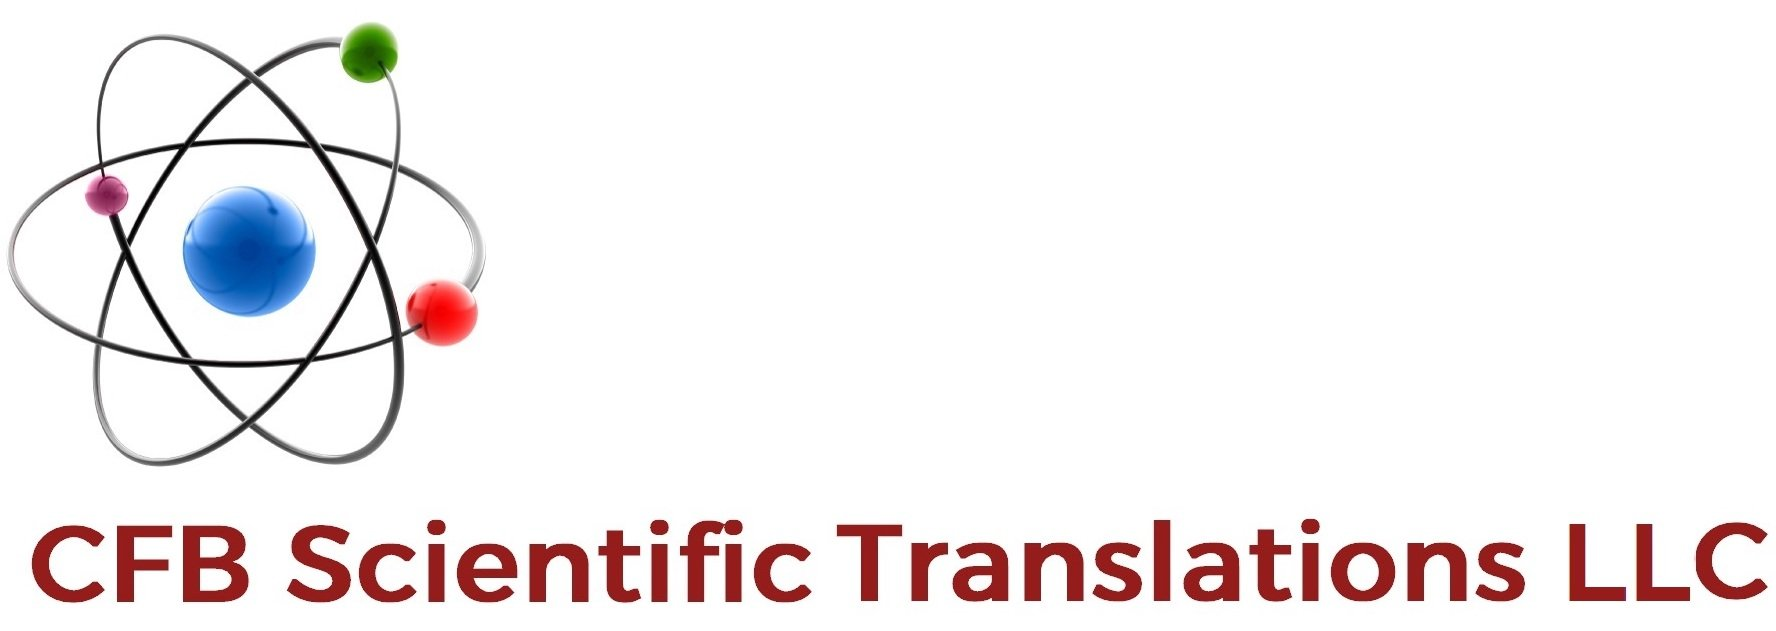 CFB Scientific Translations LLC